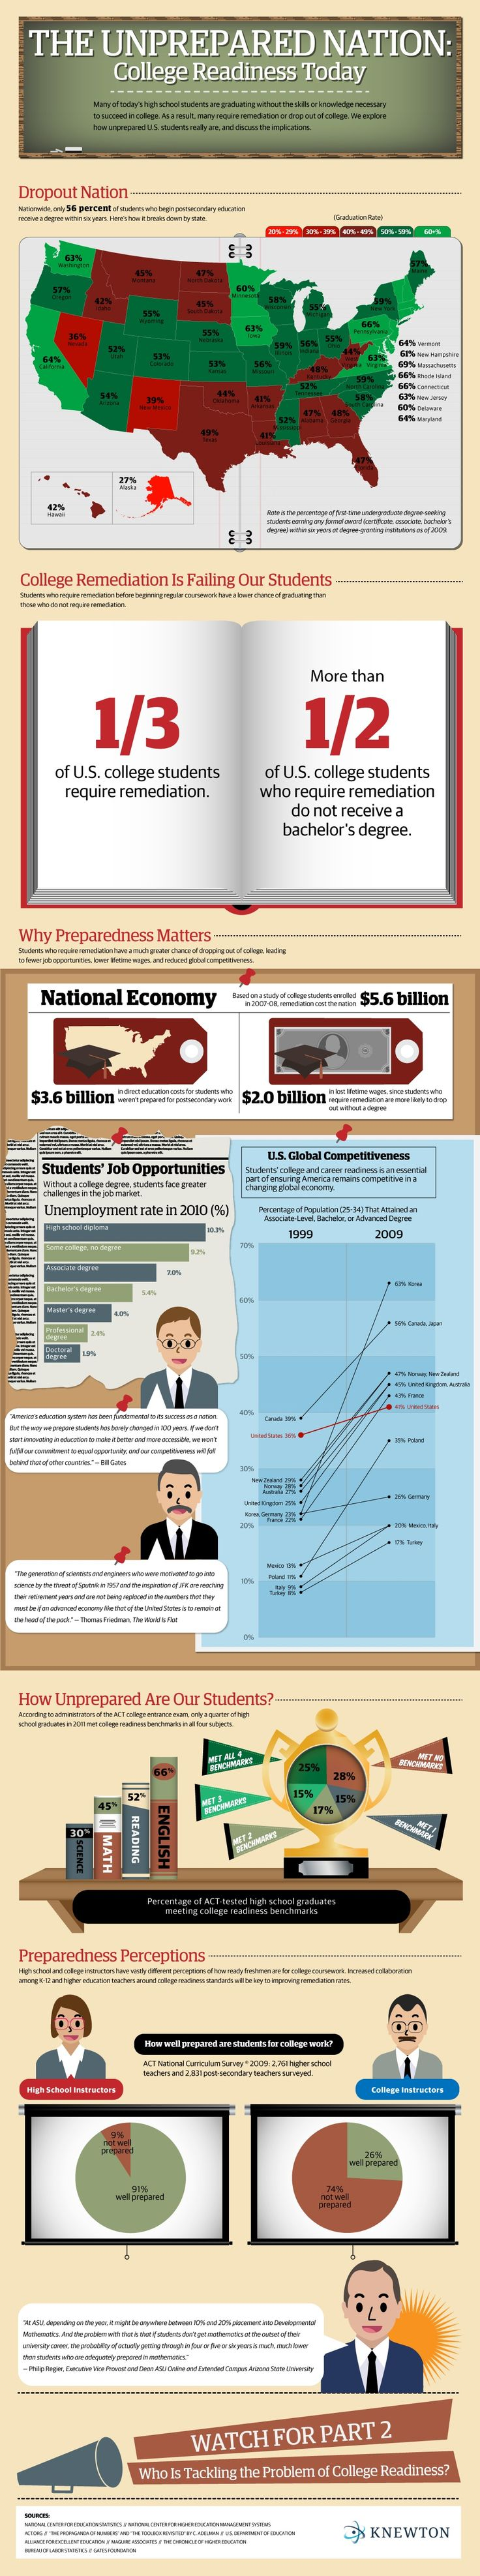 best images about preparing for college college of those students half will never receive a college degree clearly something isn t working this infographic lays out